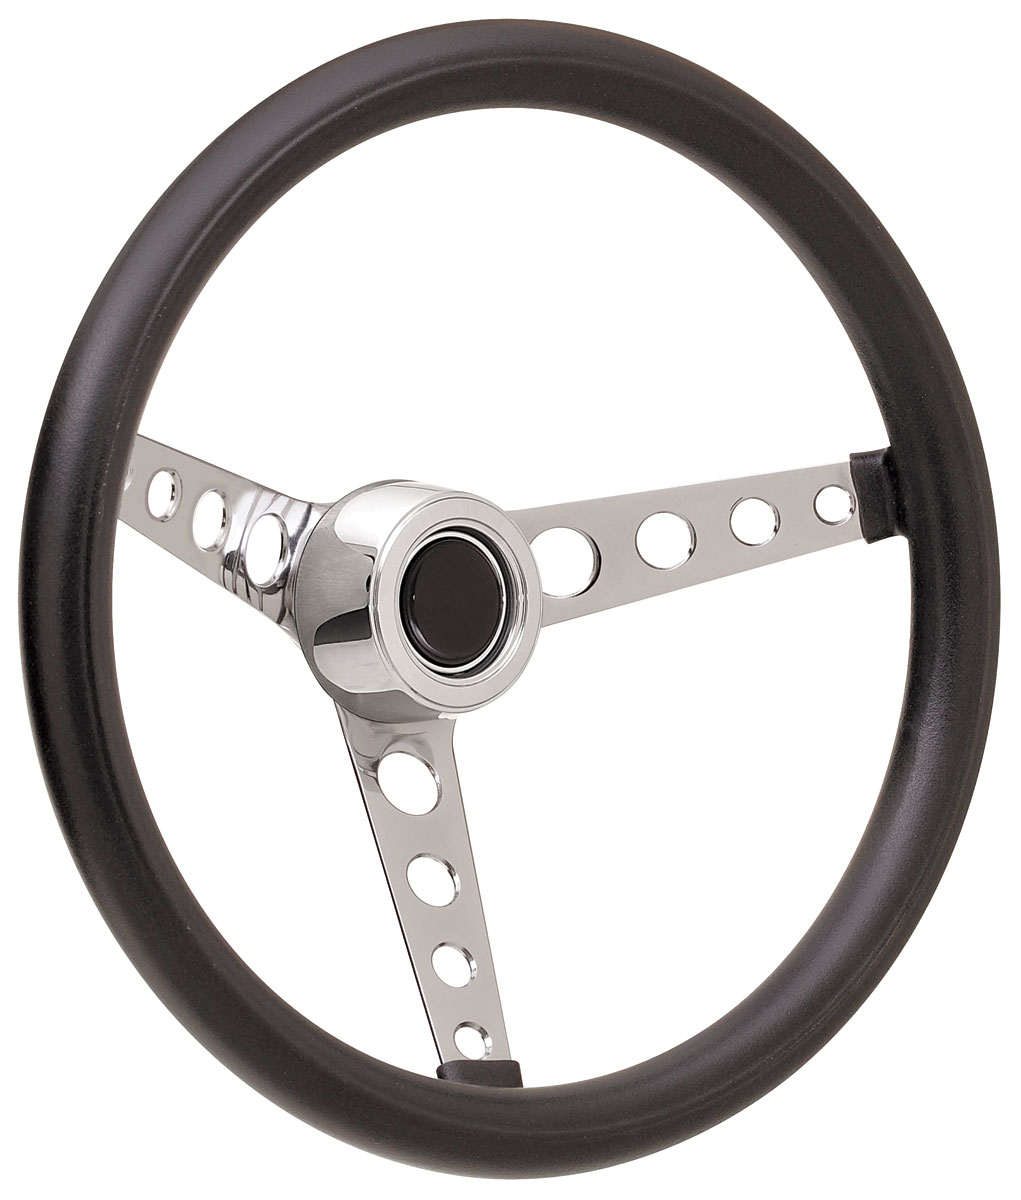 Photo of Steering Wheel Kits, Classic Foam Hi-Rise Cap - Polished with black center, early mount